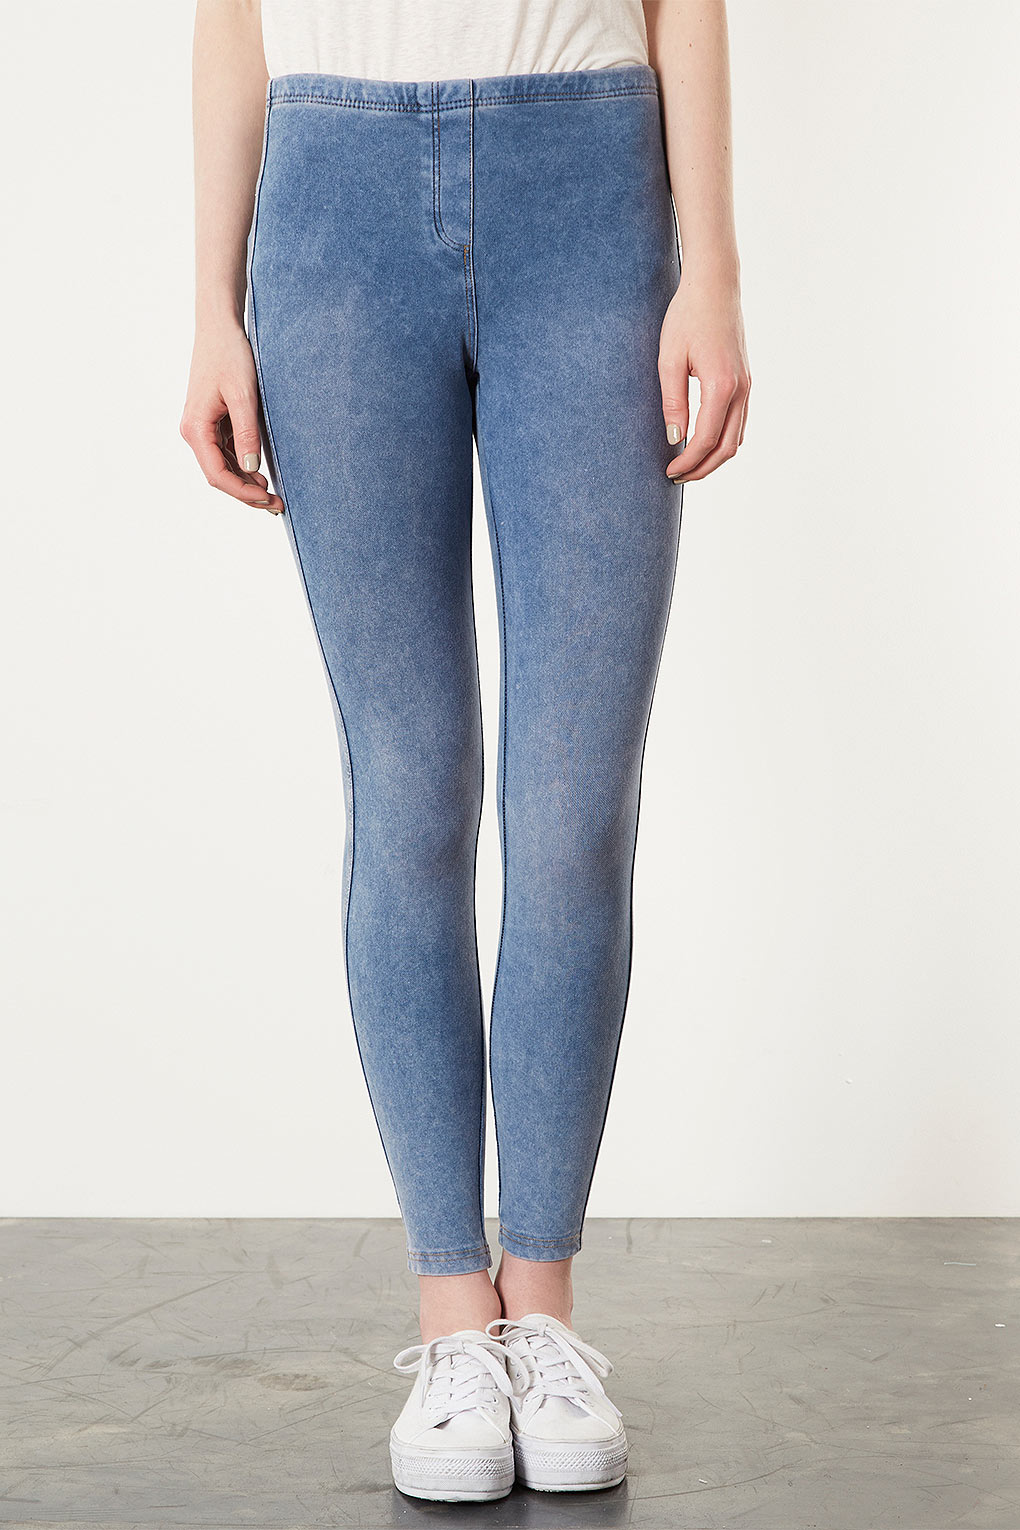 8014fb0c4b7cc TOPSHOP Light Washed Denim Leggings in Blue - Lyst